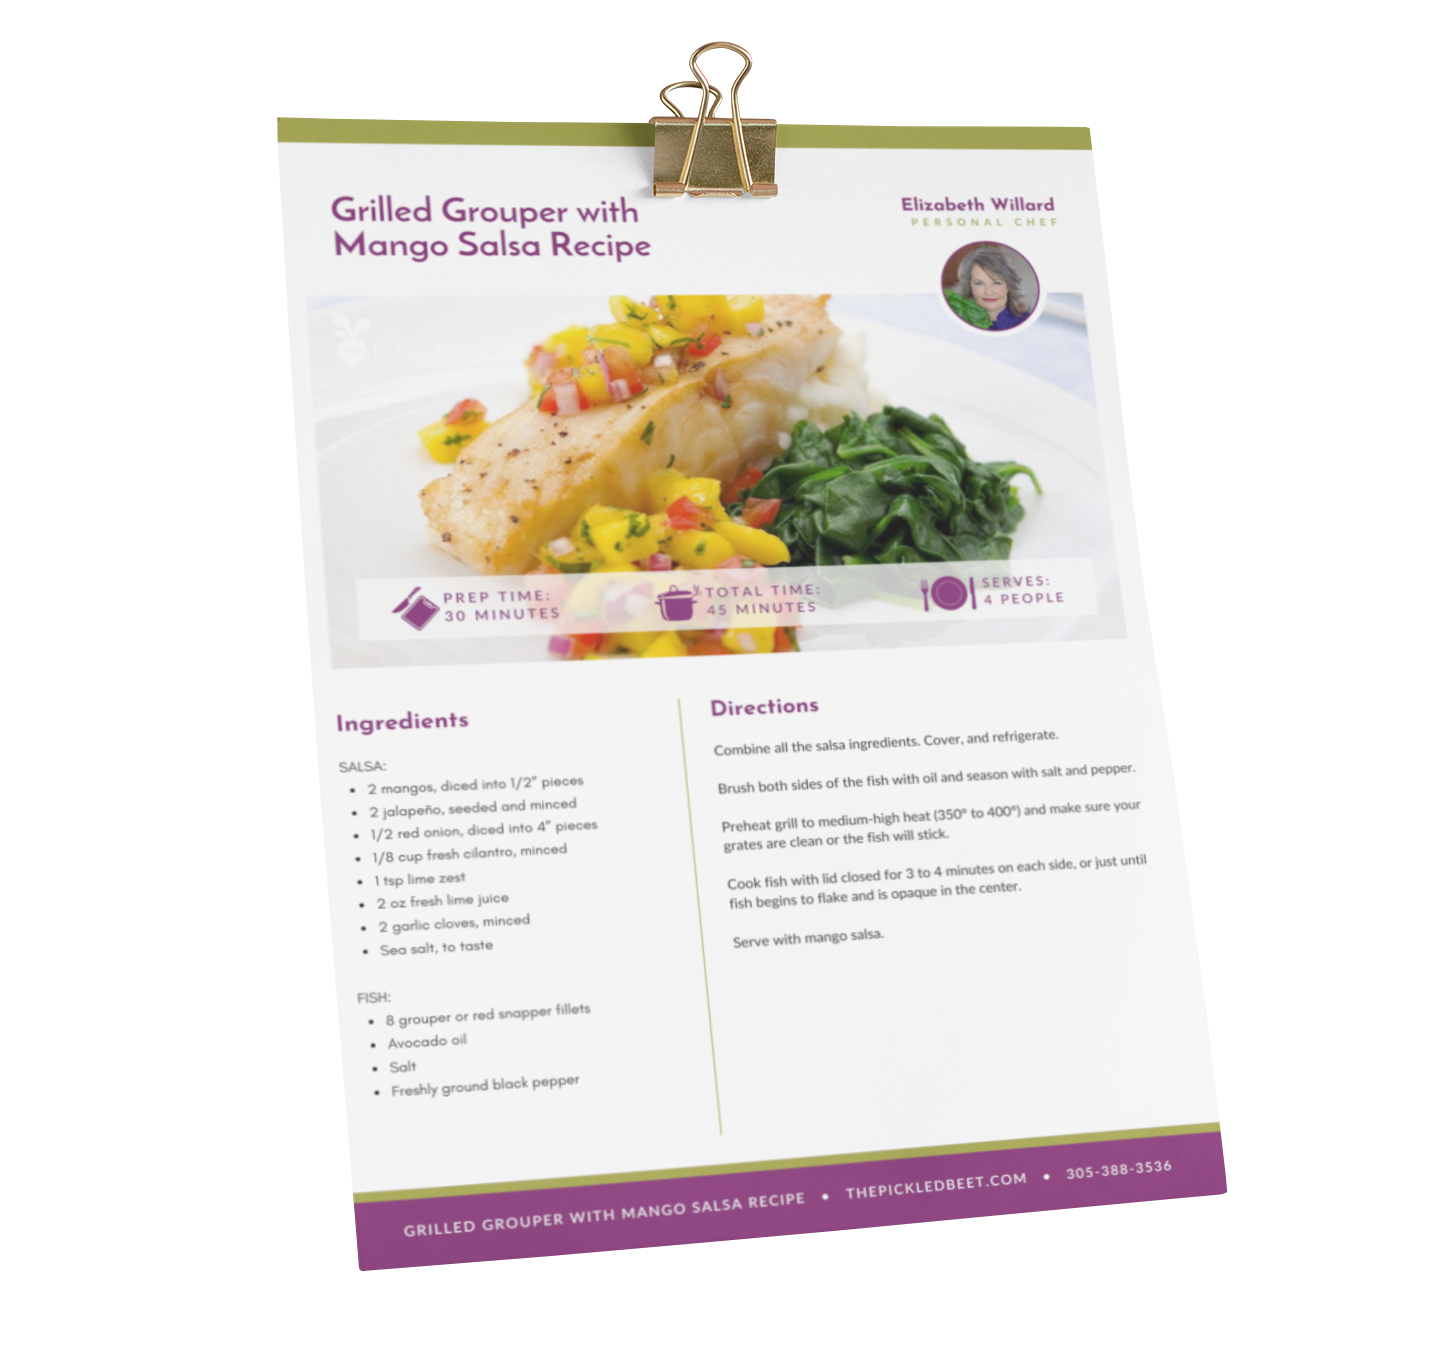 Grilled Grouper with Mango Salsa Recipe Download Mockup